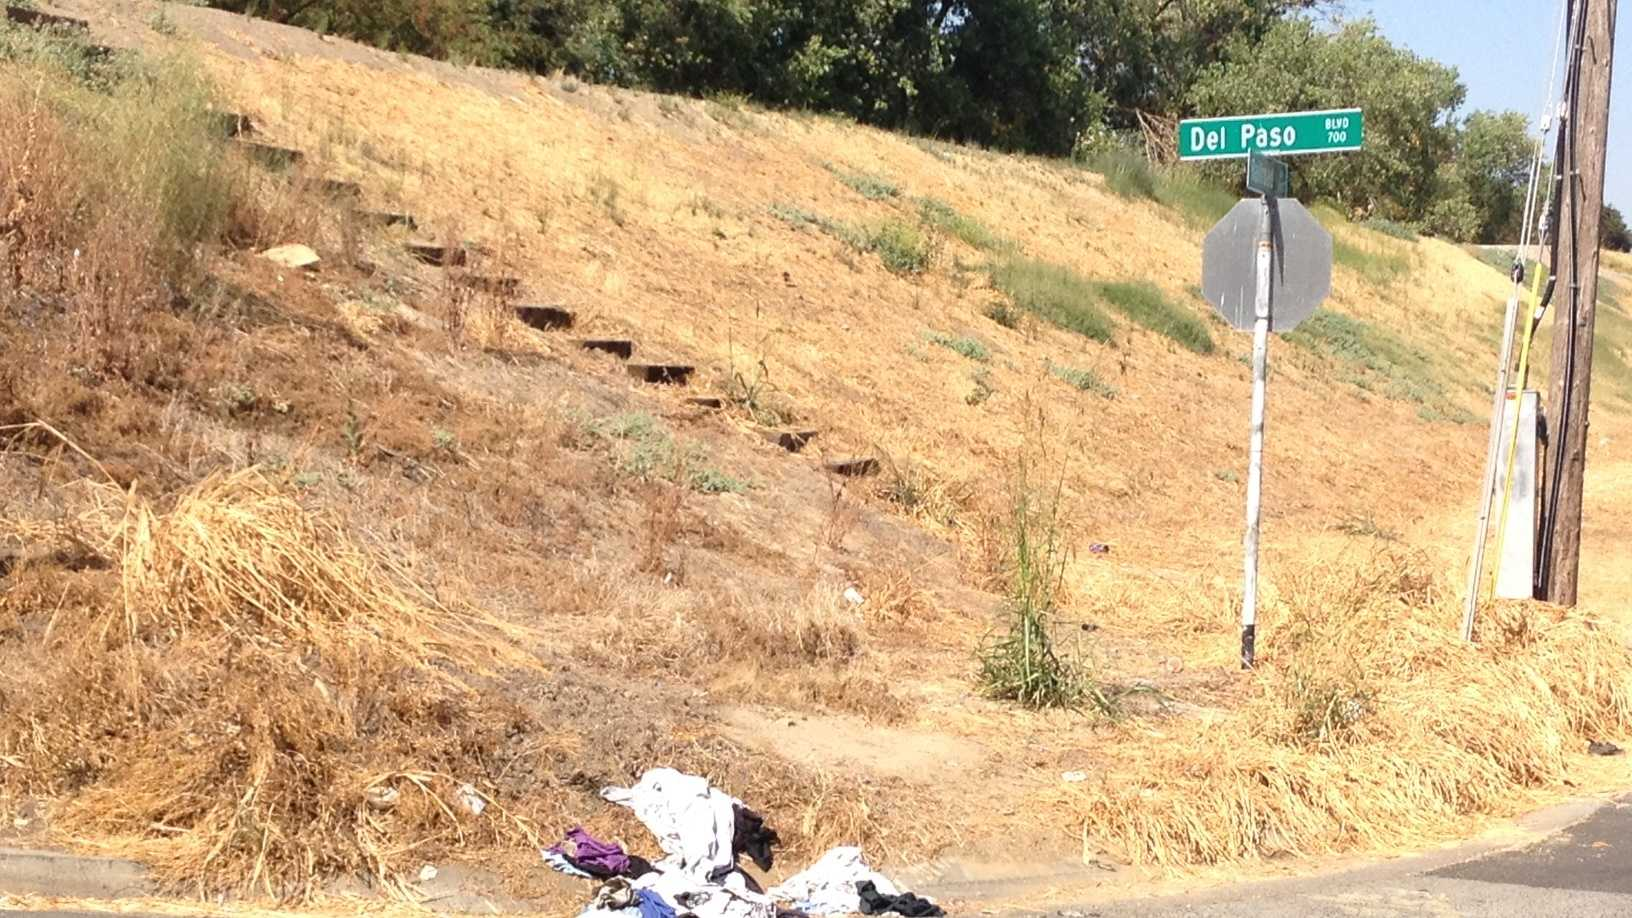 Some clothes and other items left behind by homeless are visible to drivers on Del Paso Boulevard.